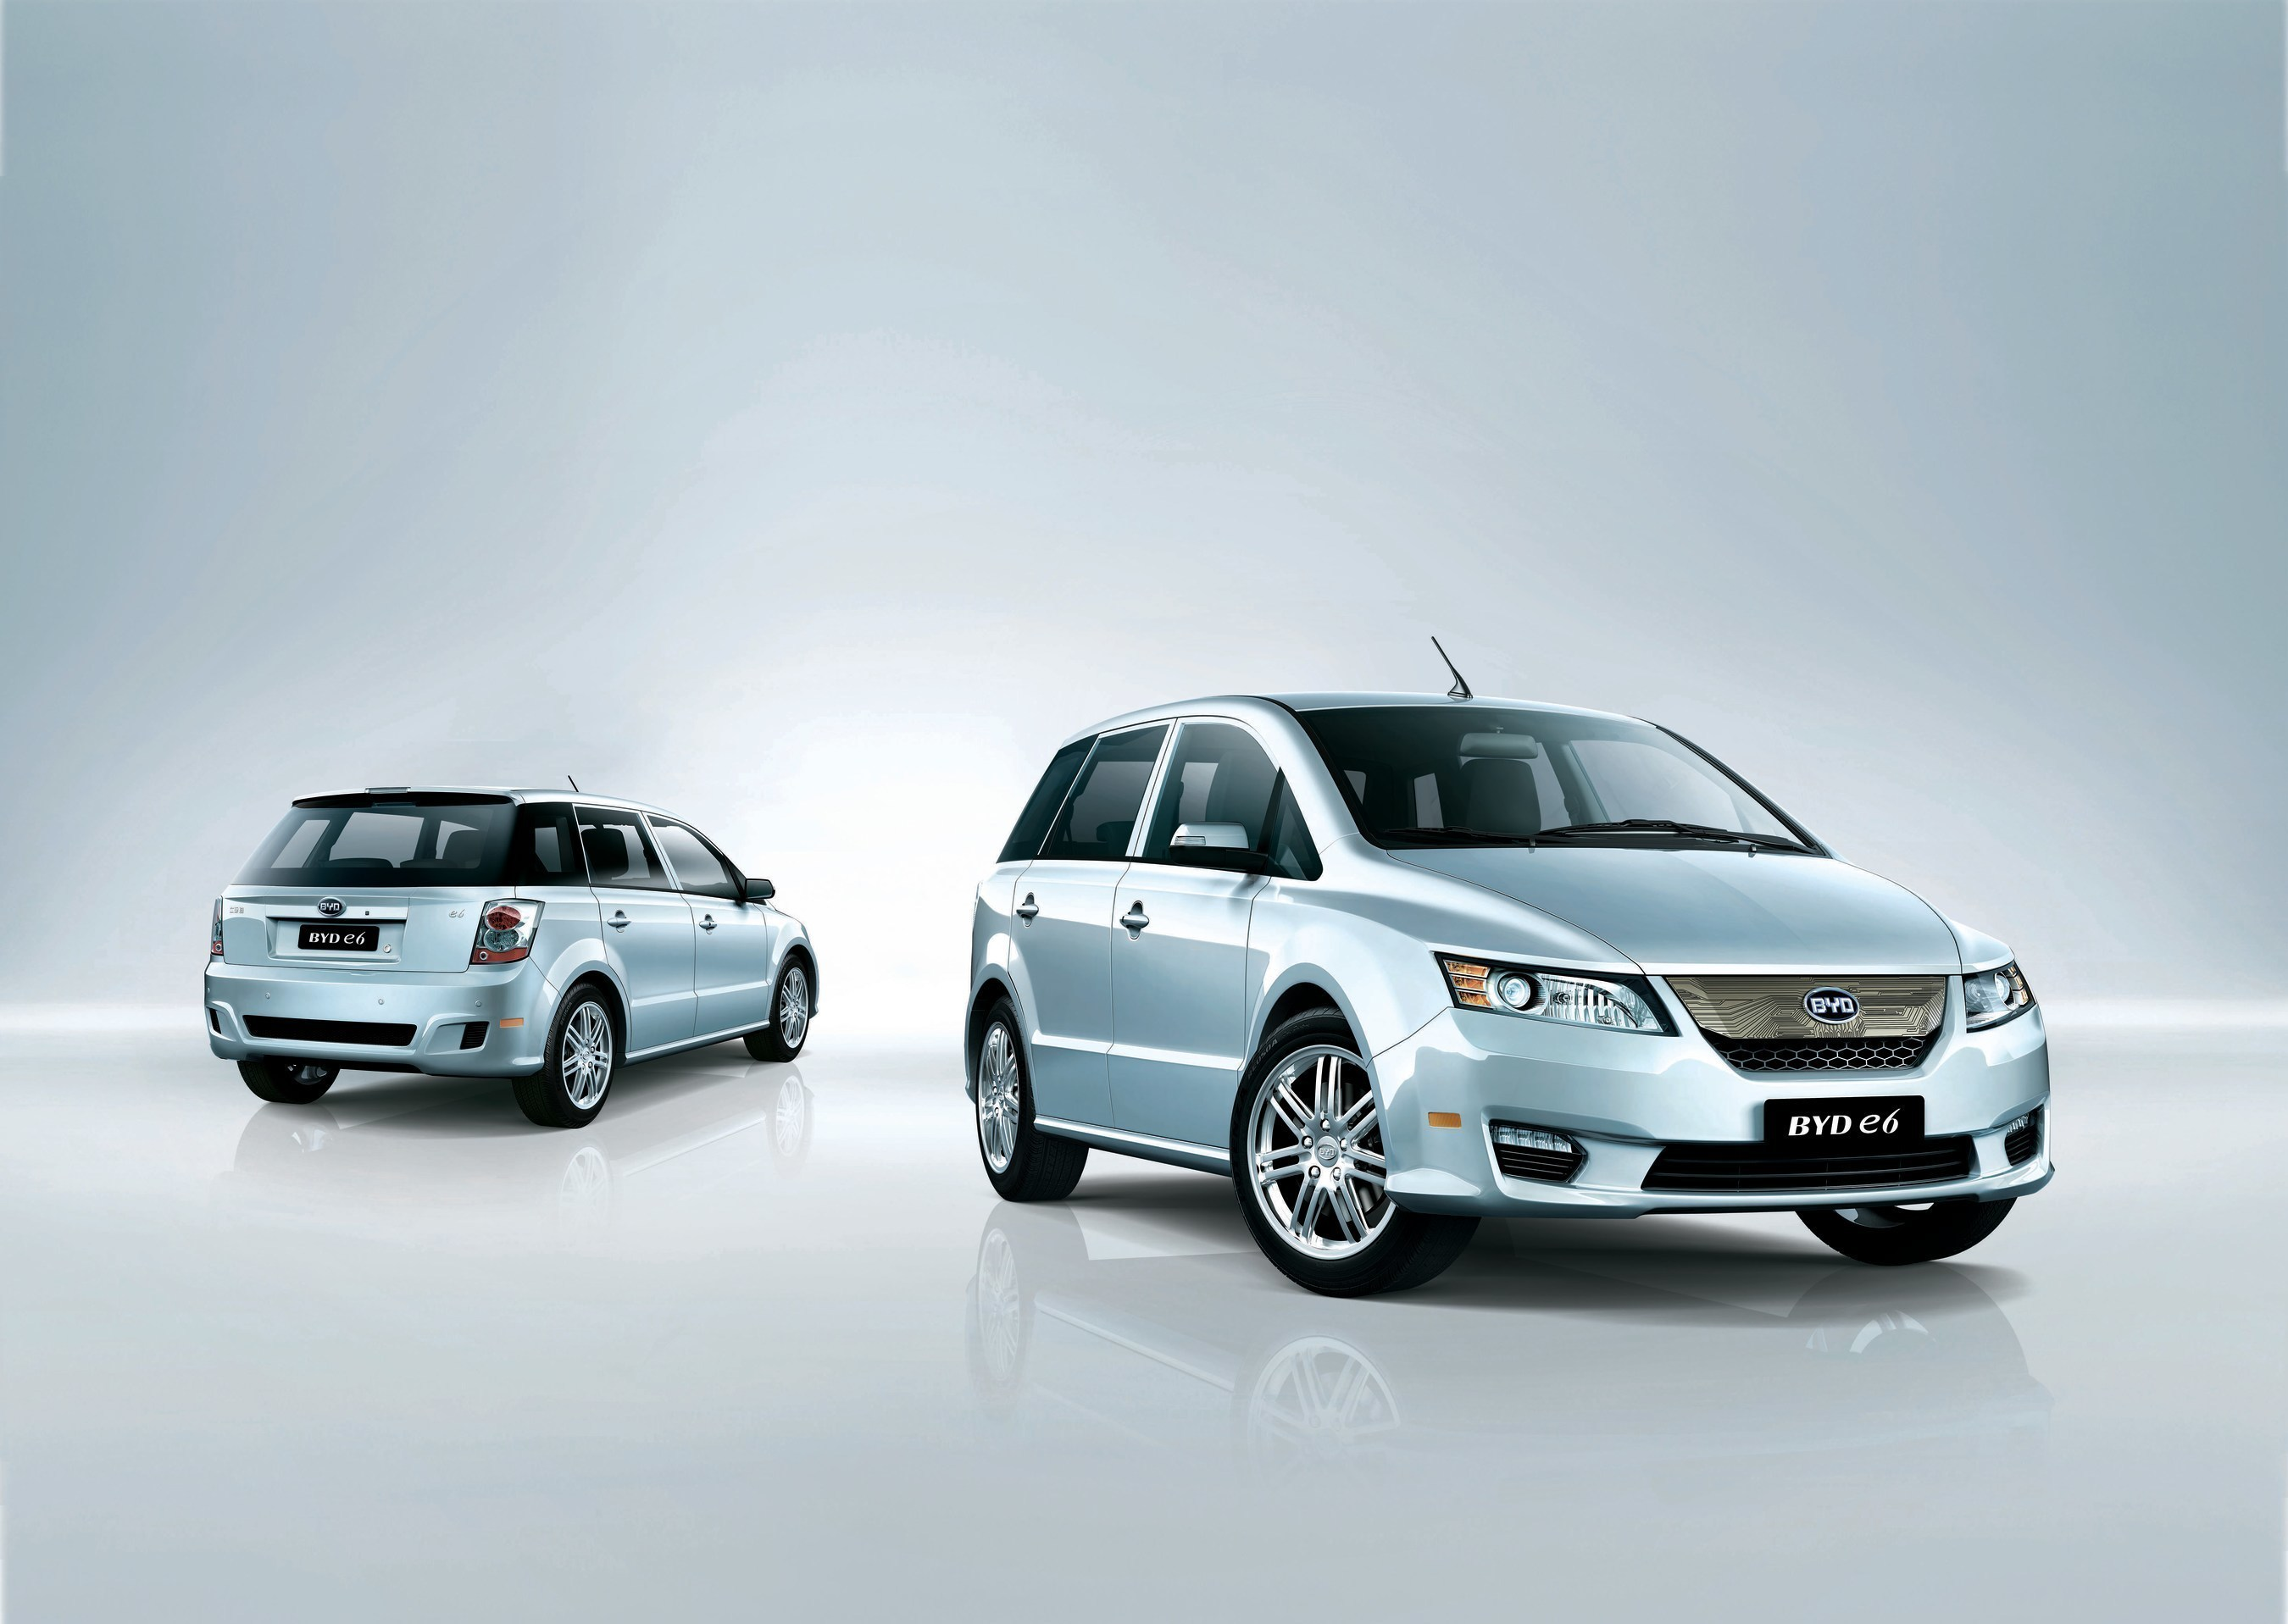 BYD e6: The World's most popular fleet utility Electric Vehicle